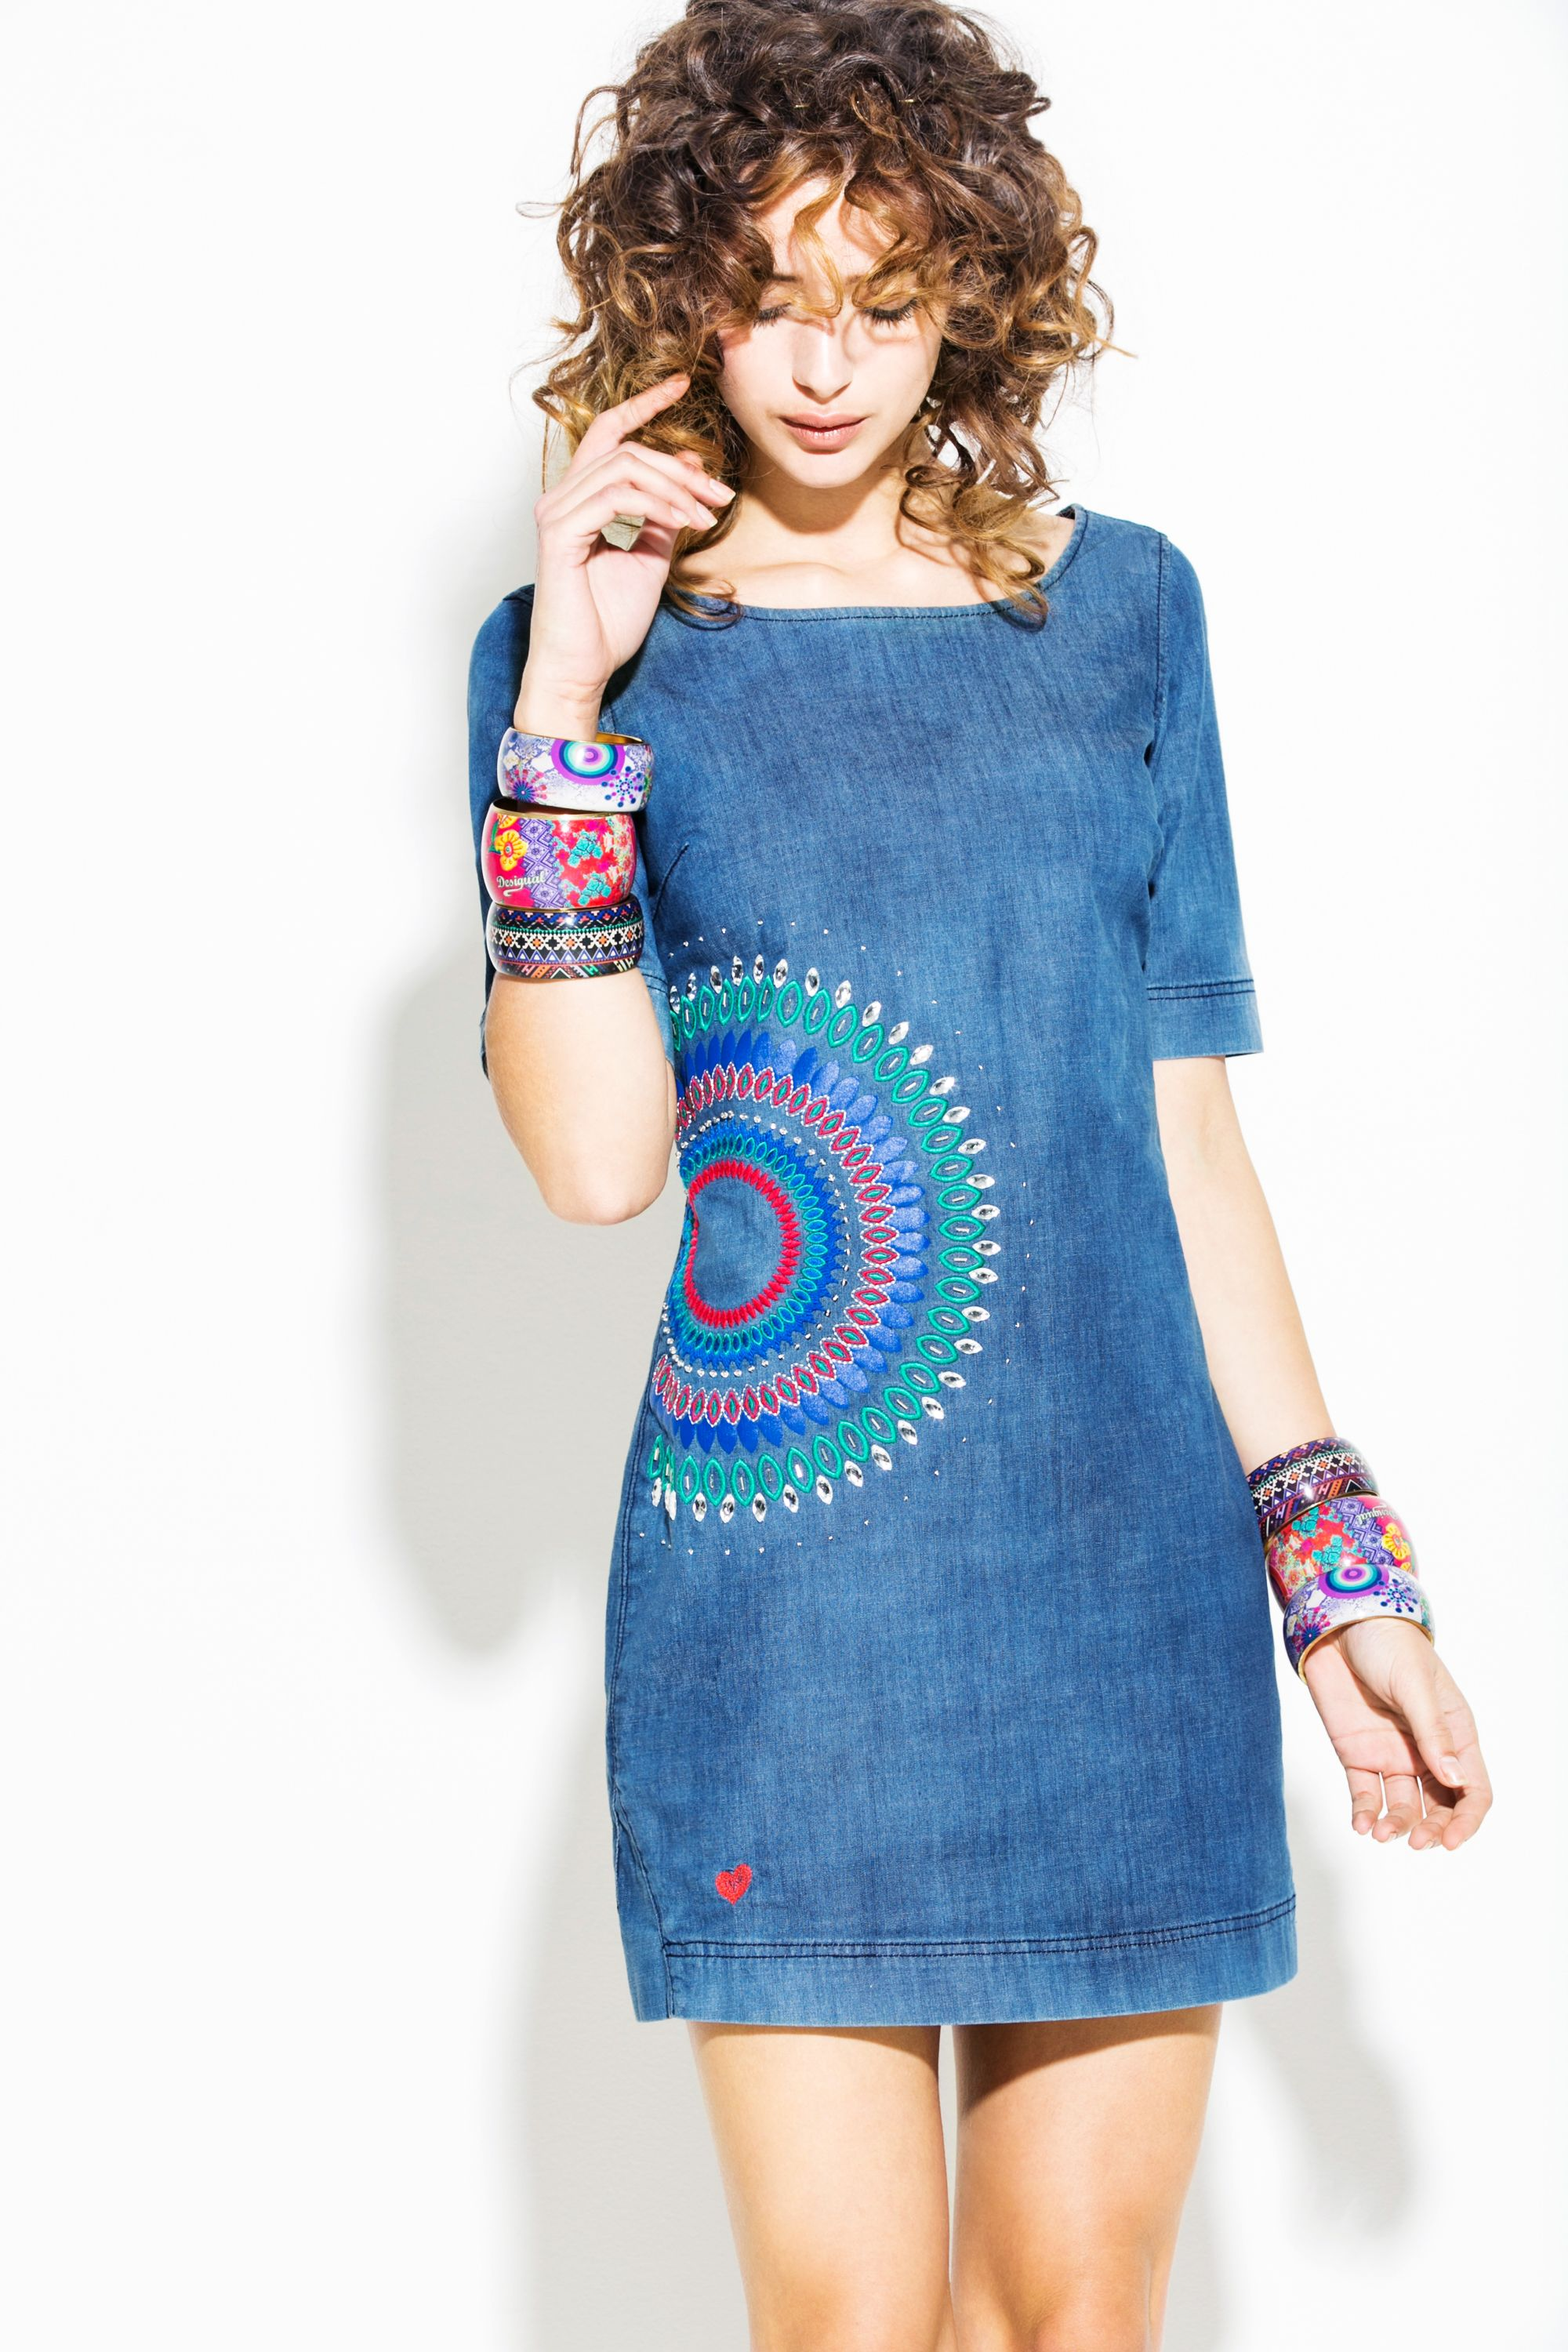 e3f30153 Dress Denim..This one will look great on her :) | Fashion for Her ...